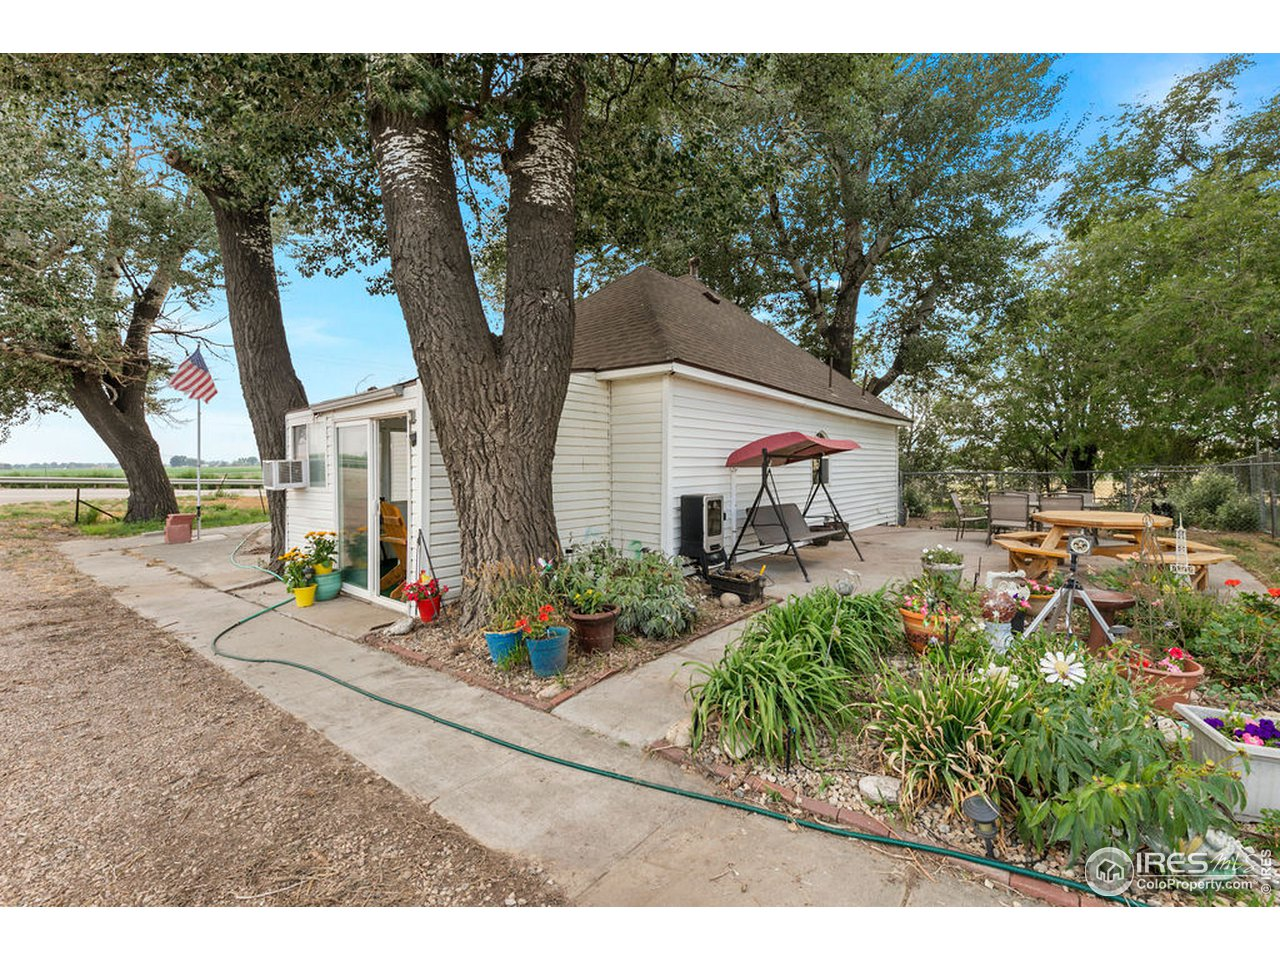 Out back on the north side you will find another shady patio and a nice flower garden.